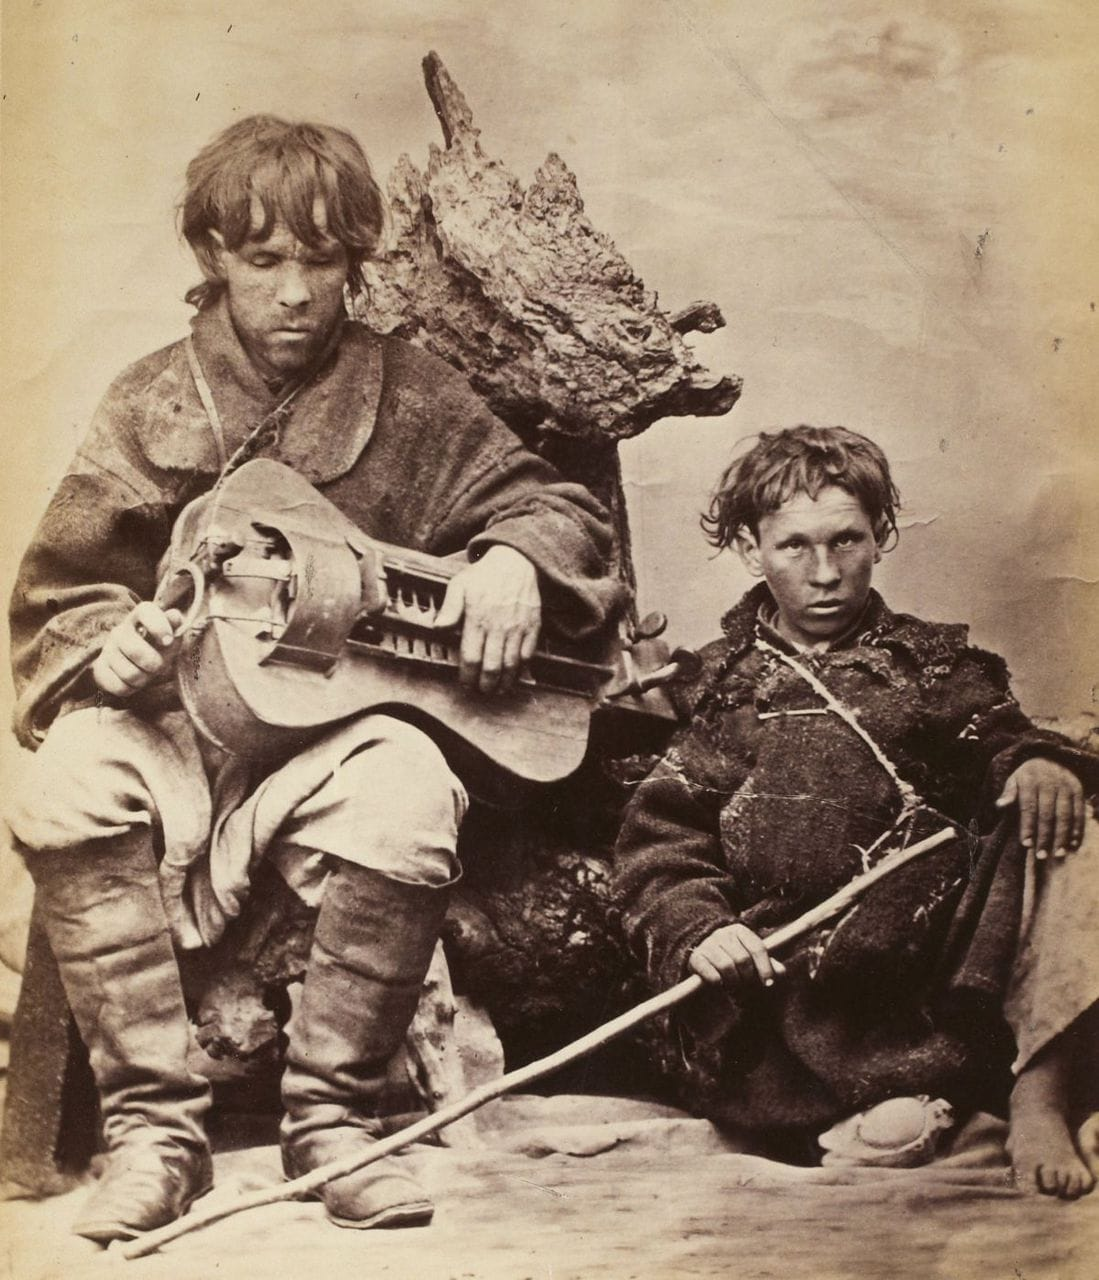 Blind Ukrainian lyra (hurdy gurdy) player